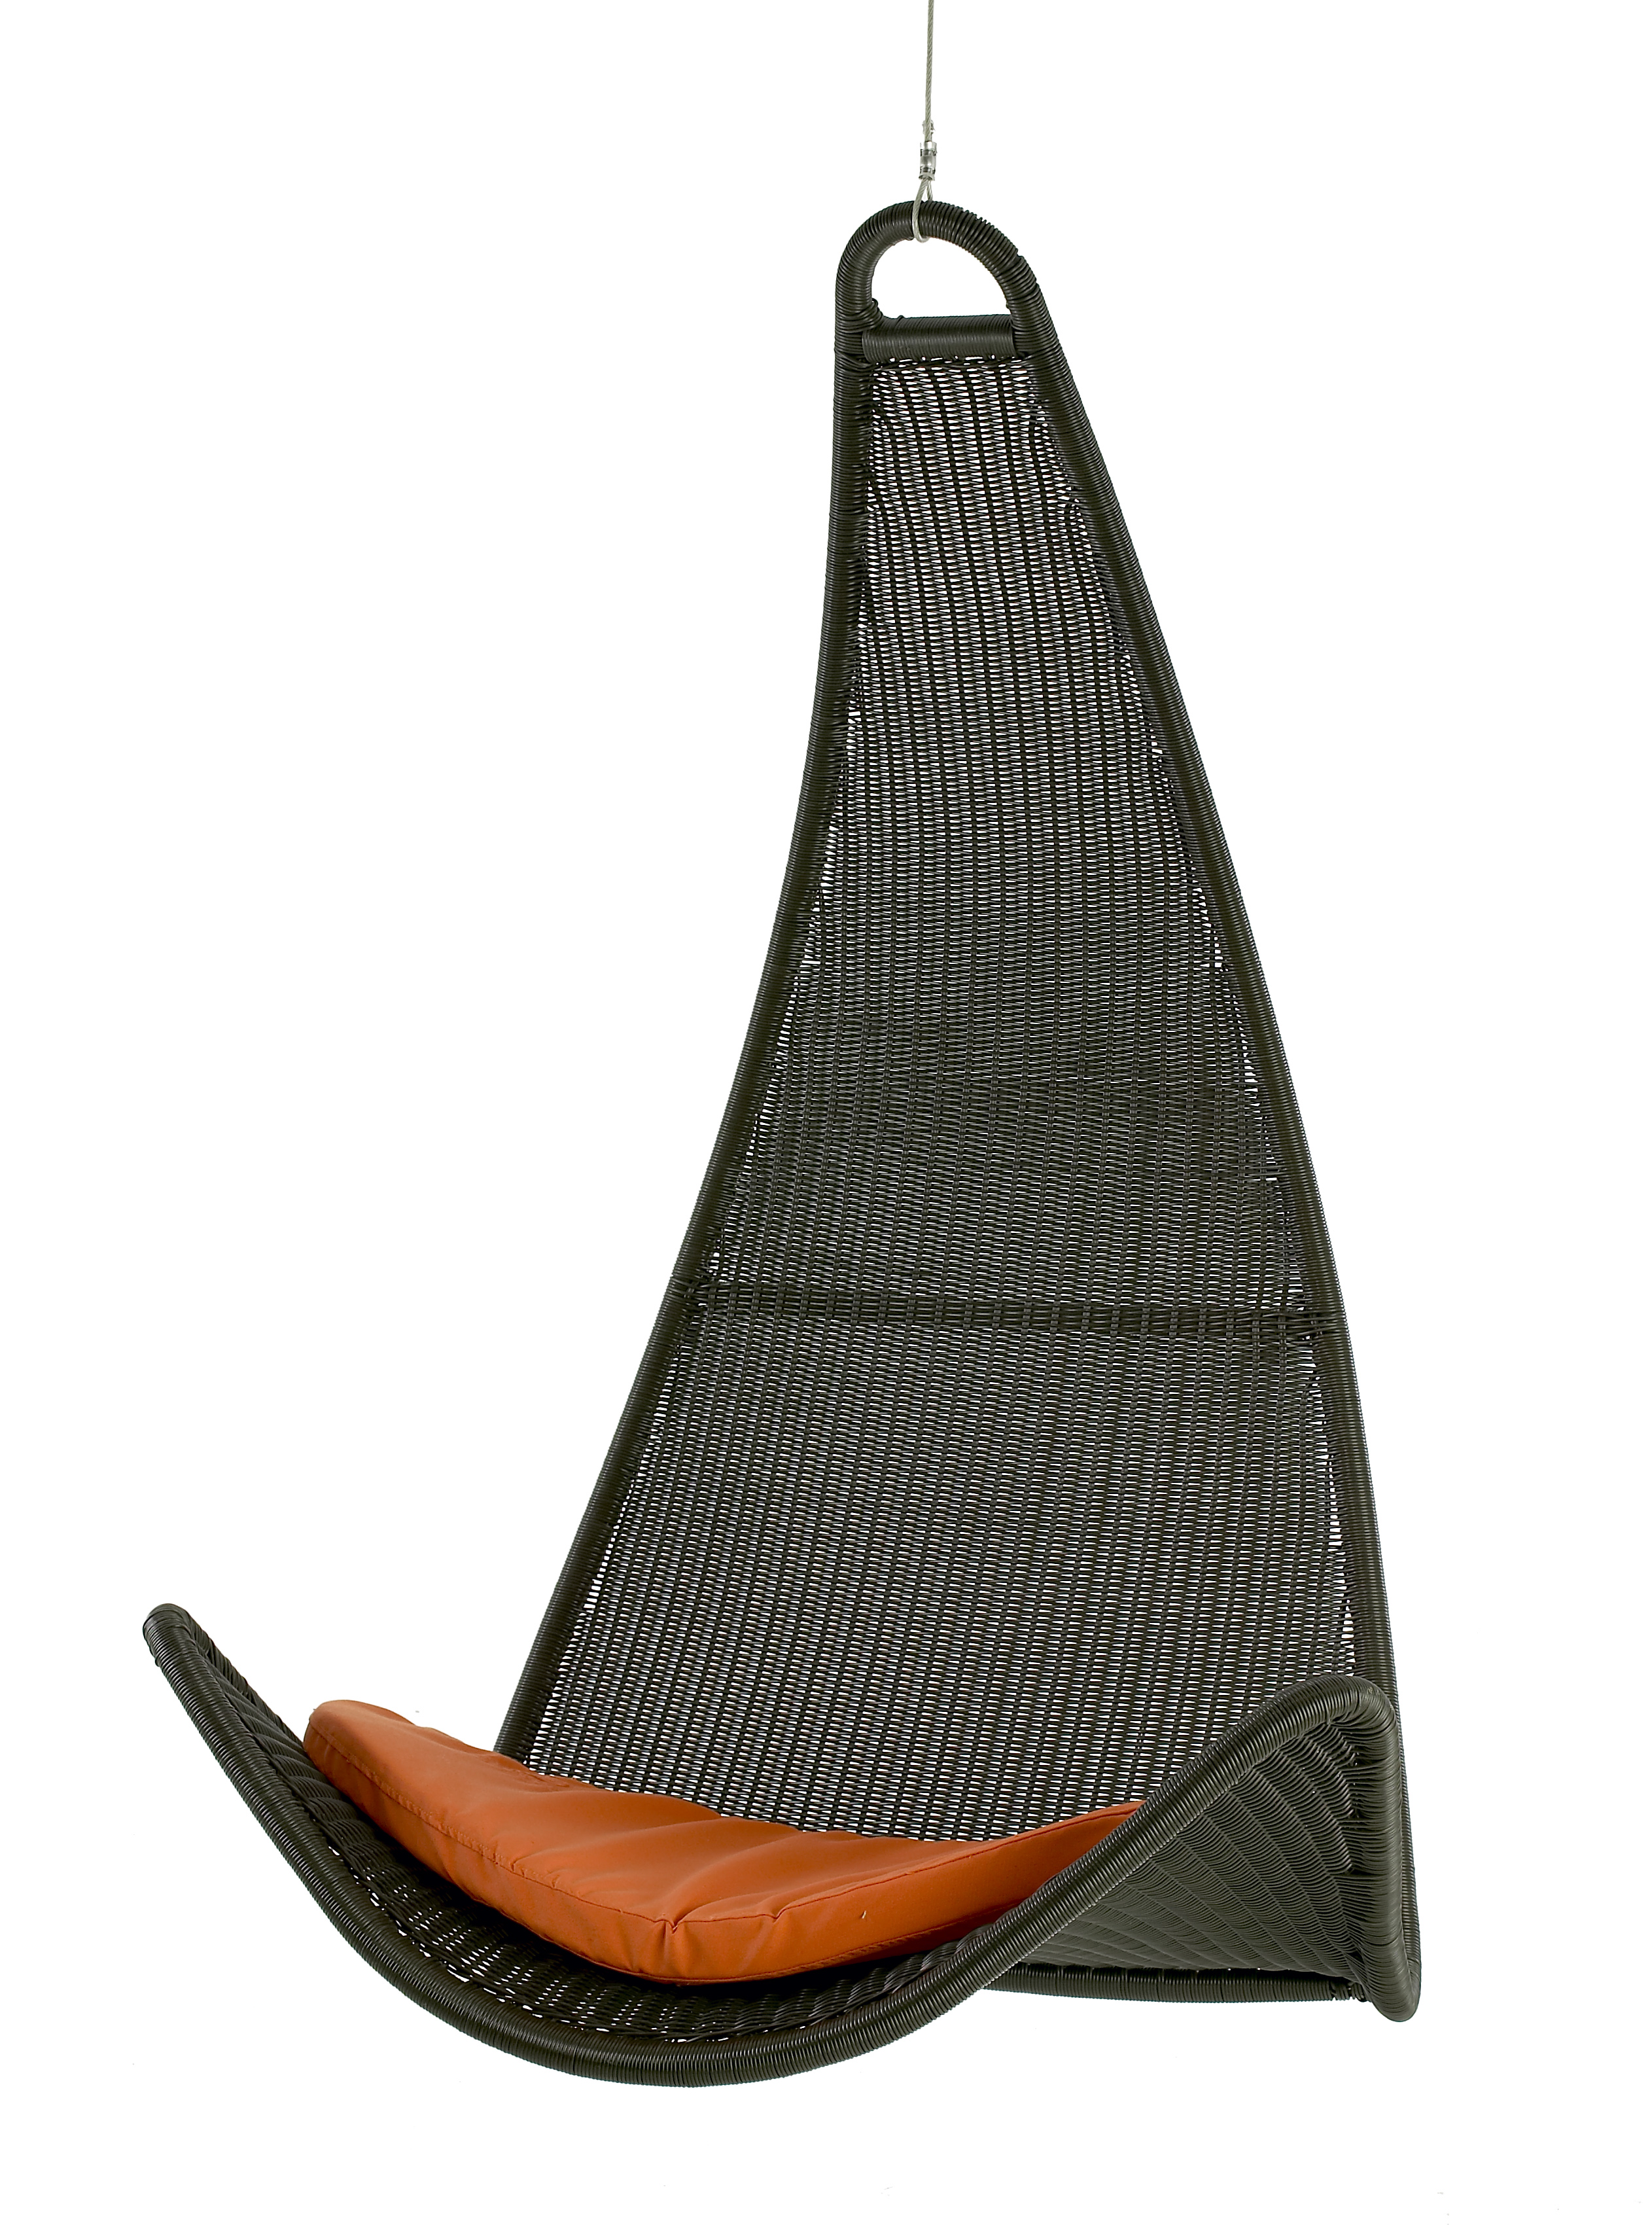 rocking accent chair wicker hanging chair hd images